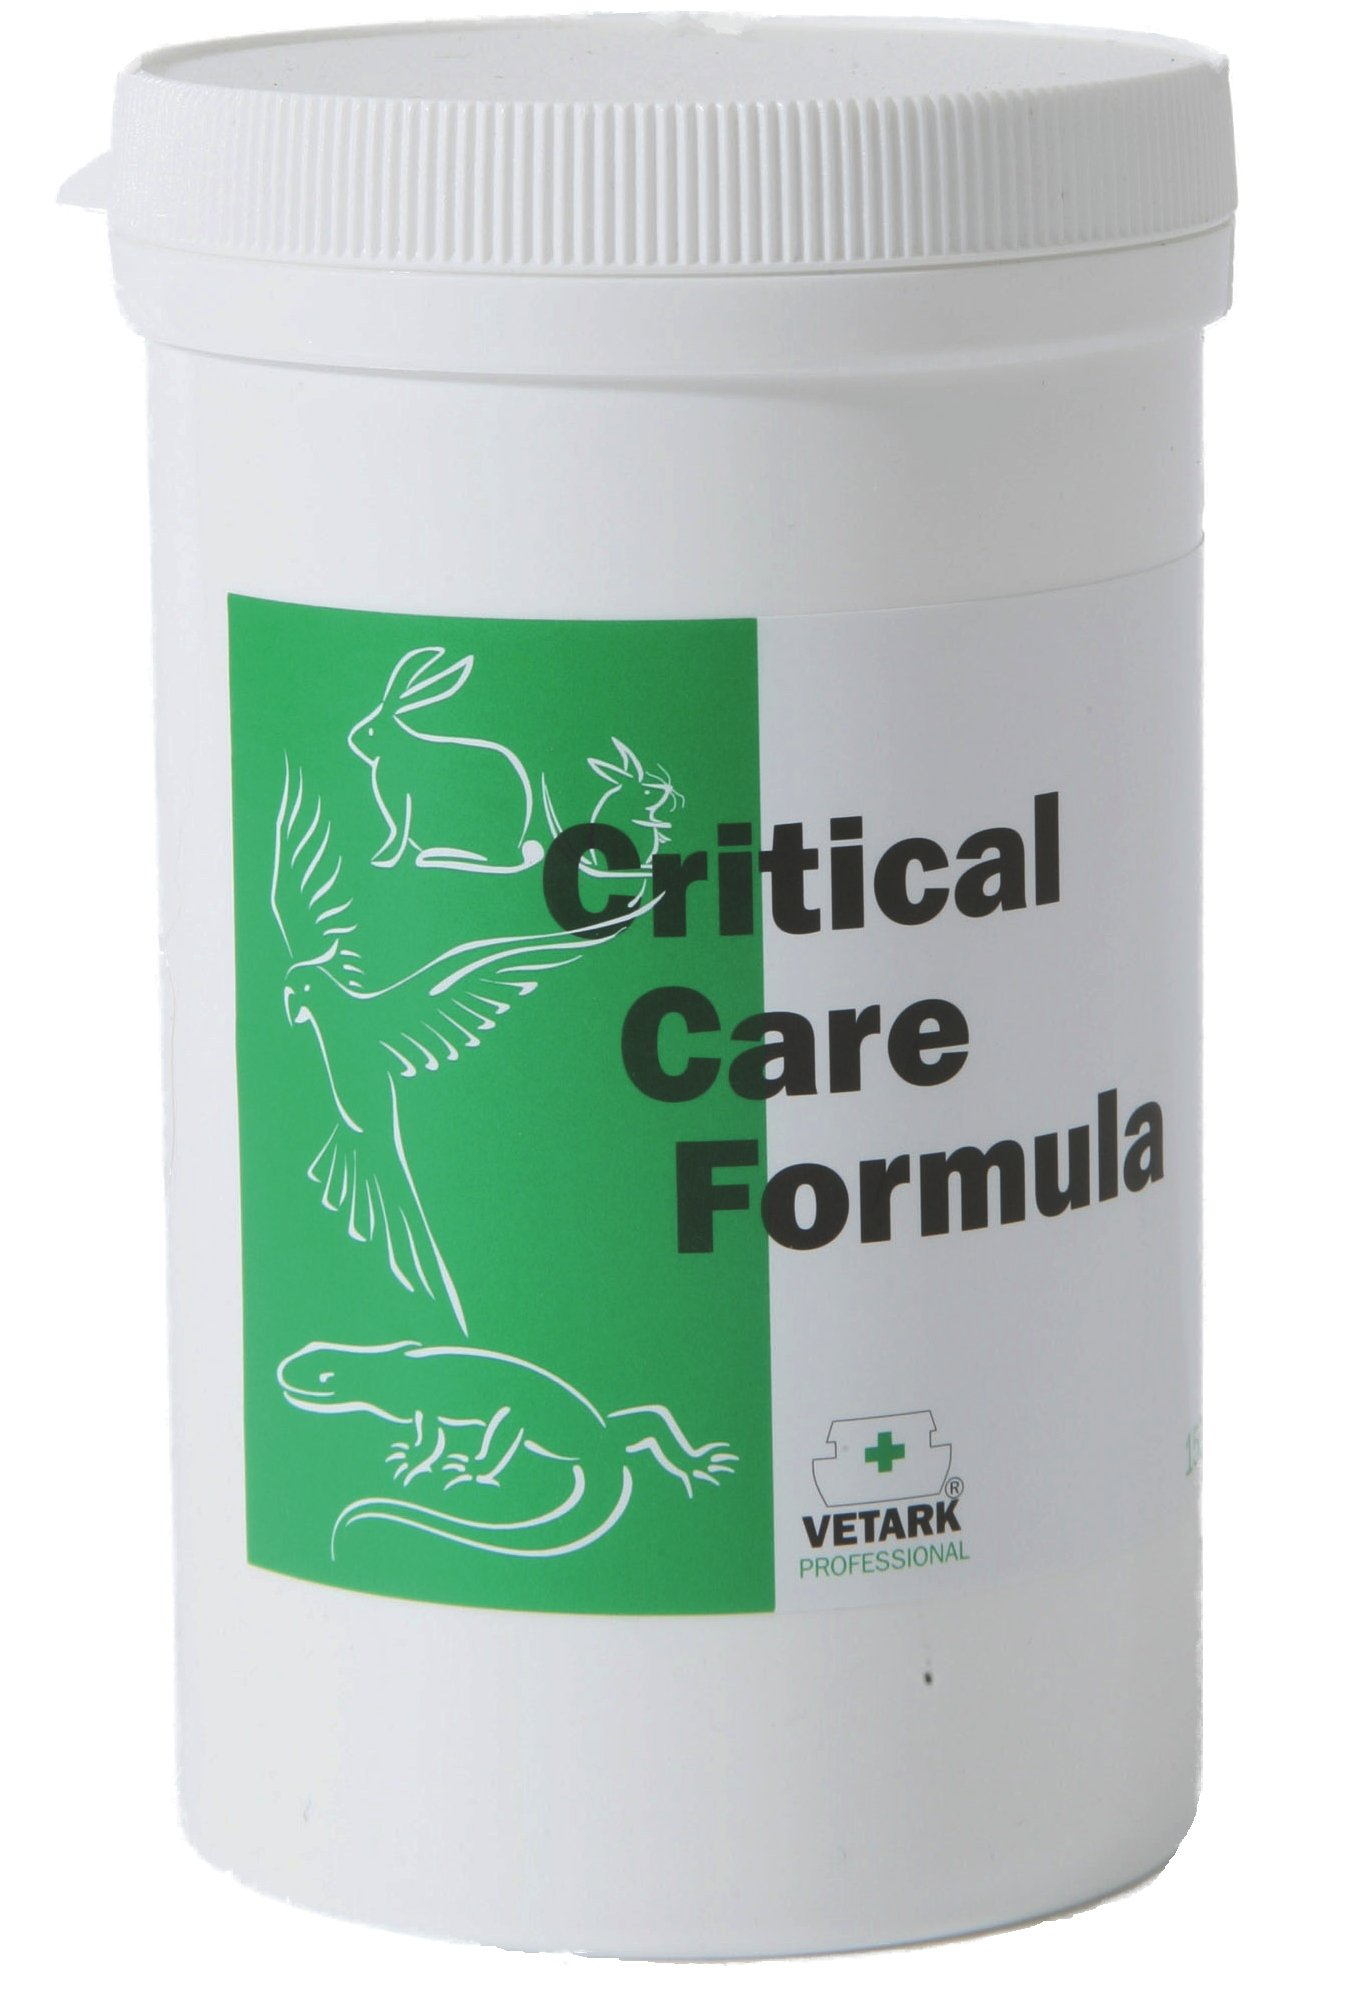 Vetark Professional Critical Care Formula, 150 g